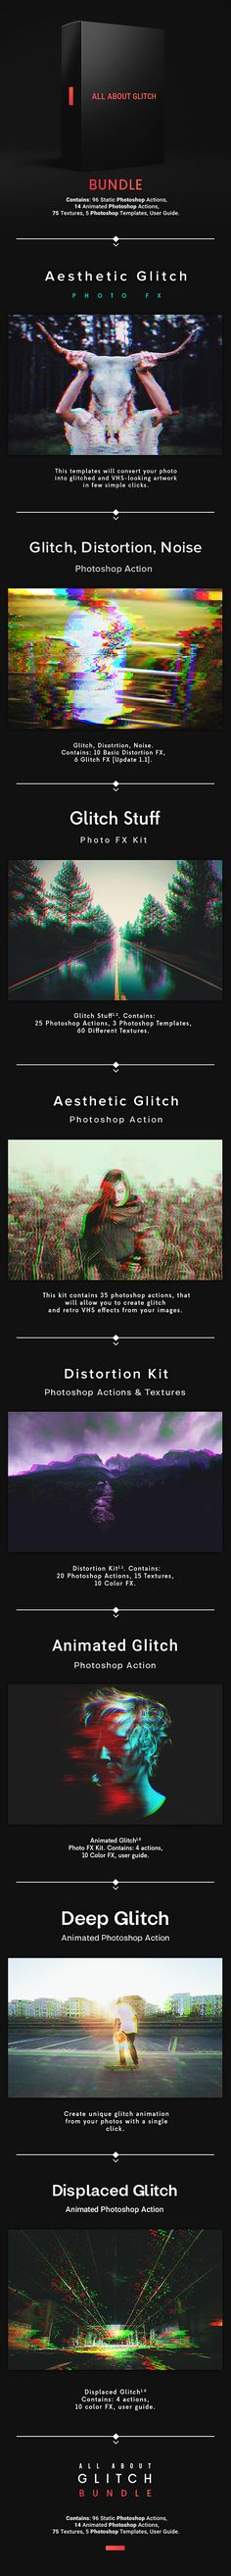 All About Glitch Bundle — Photoshop Action  #hipster #action • Download ➝ https://graphicriver.net/item/all-about-glitch-bundle/20510650?ref=pxcr